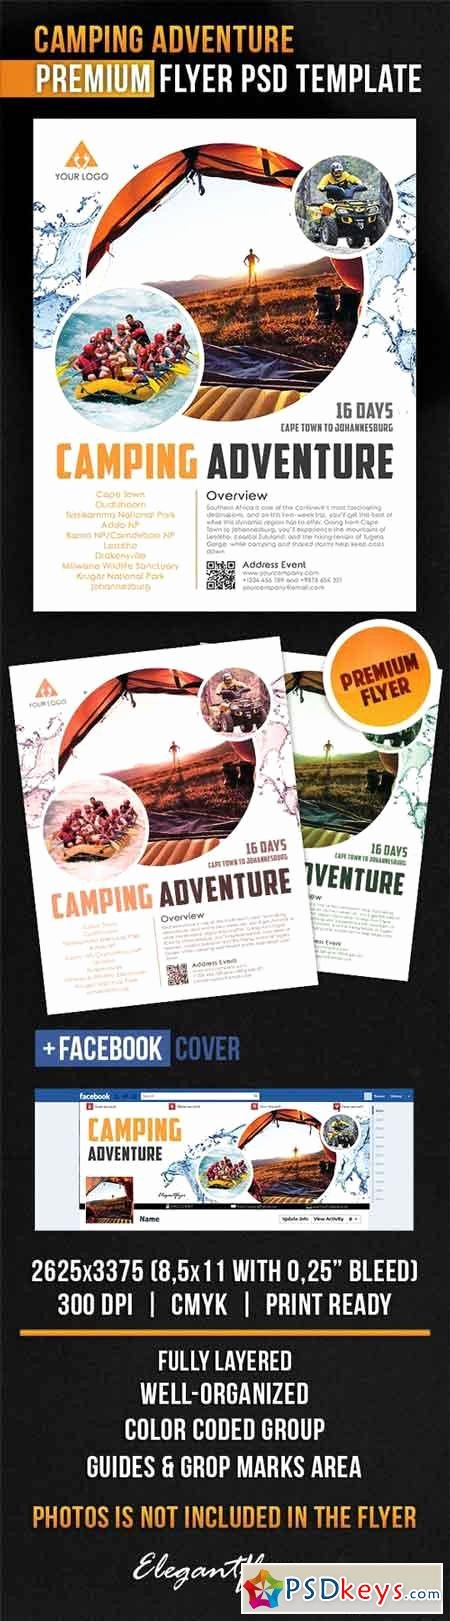 Facebook Ad Template Psd Awesome Camping Adventure – Flyer Psd Template Cover